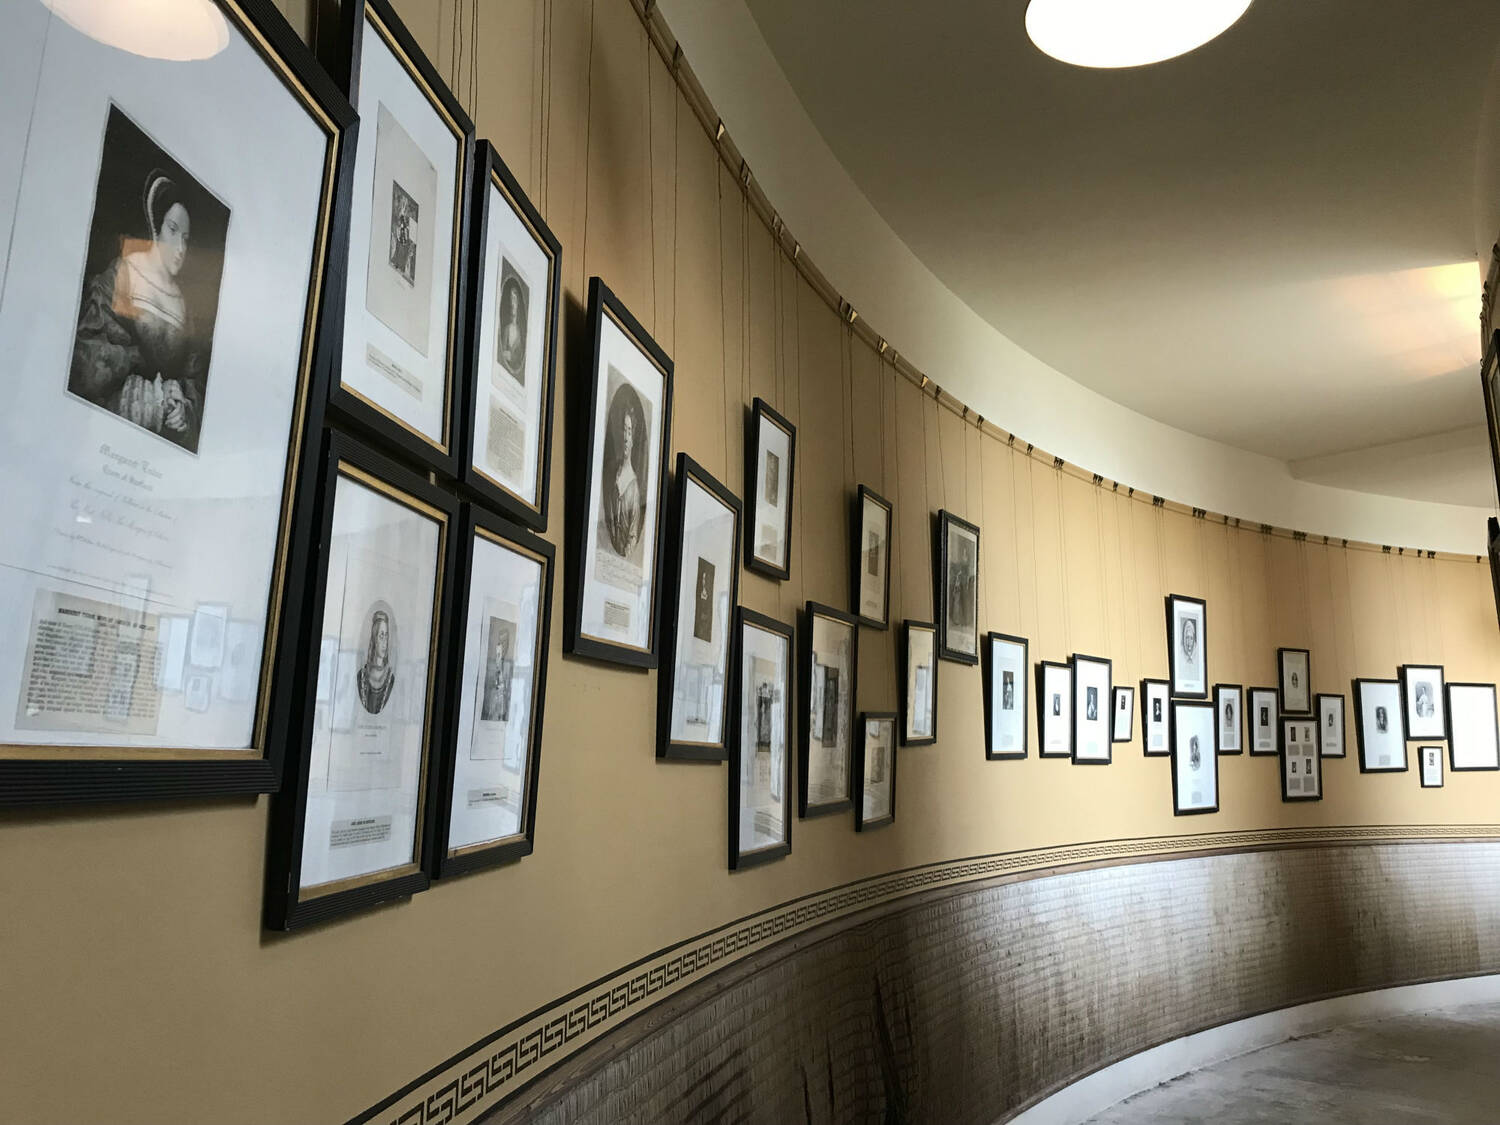 A collection of prints lining the walls in Haddo House's South Quadrant